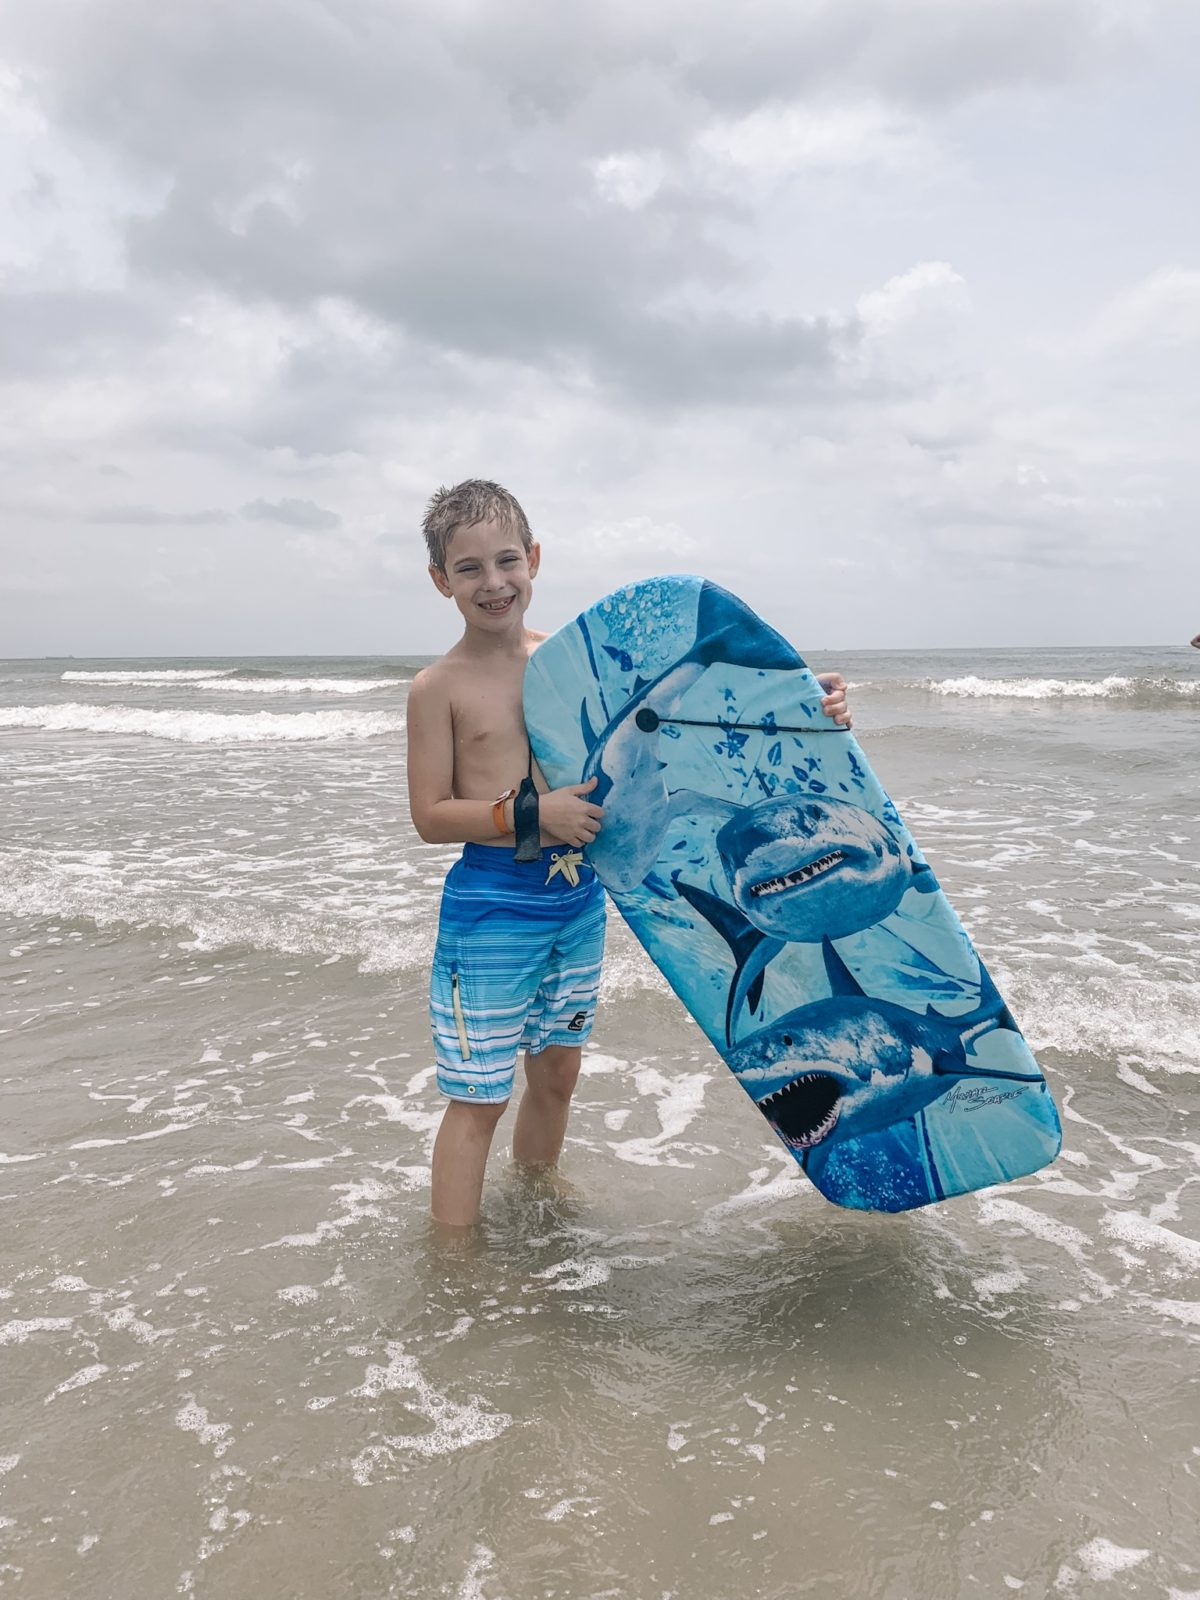 48 Hours in Galveston - boogie boarding